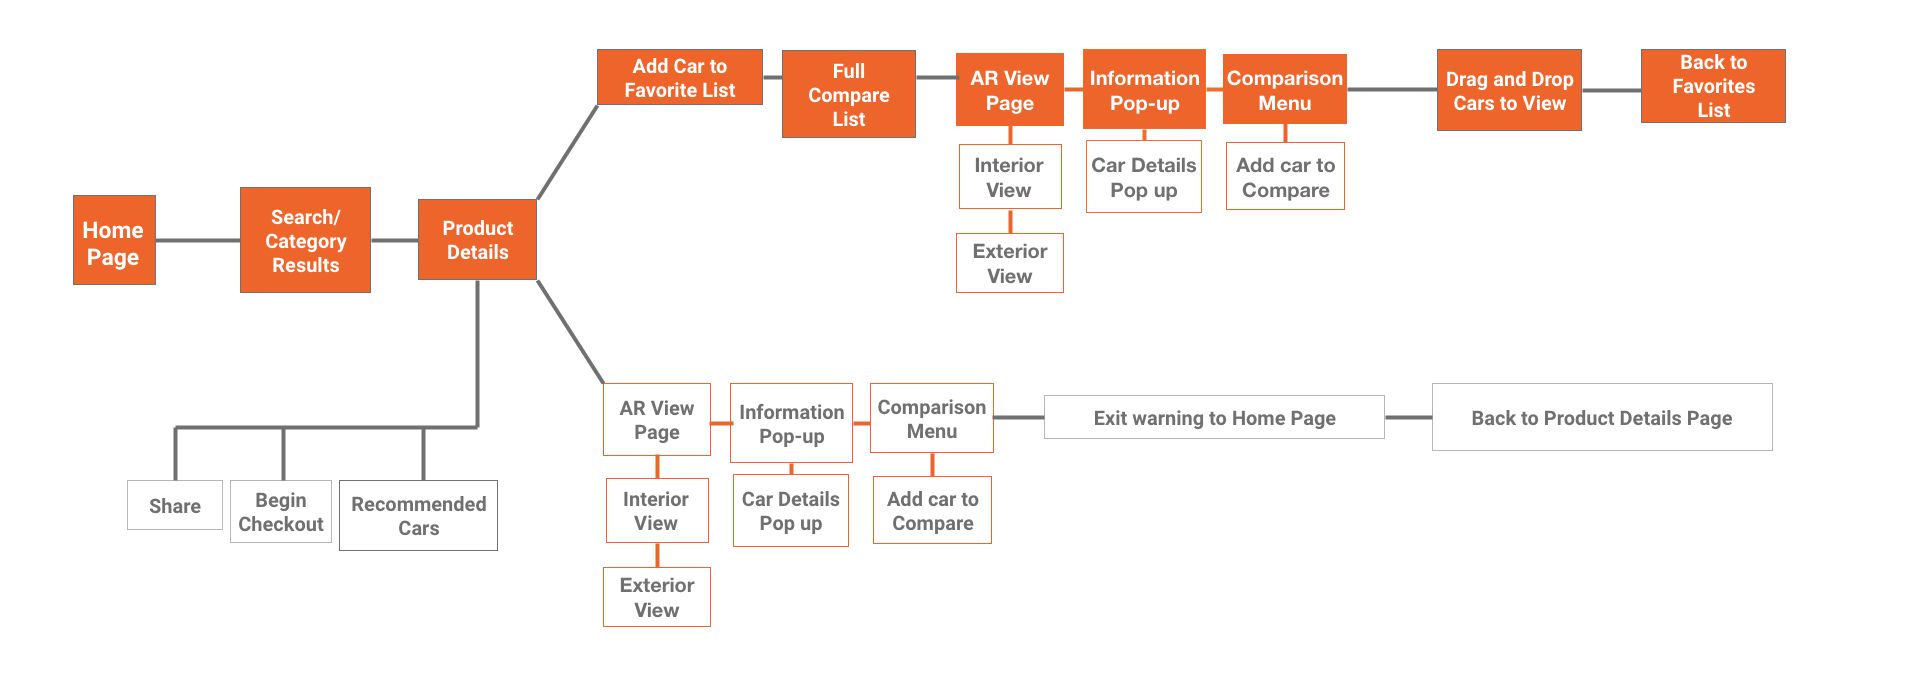 User Task Flow-New 1.png